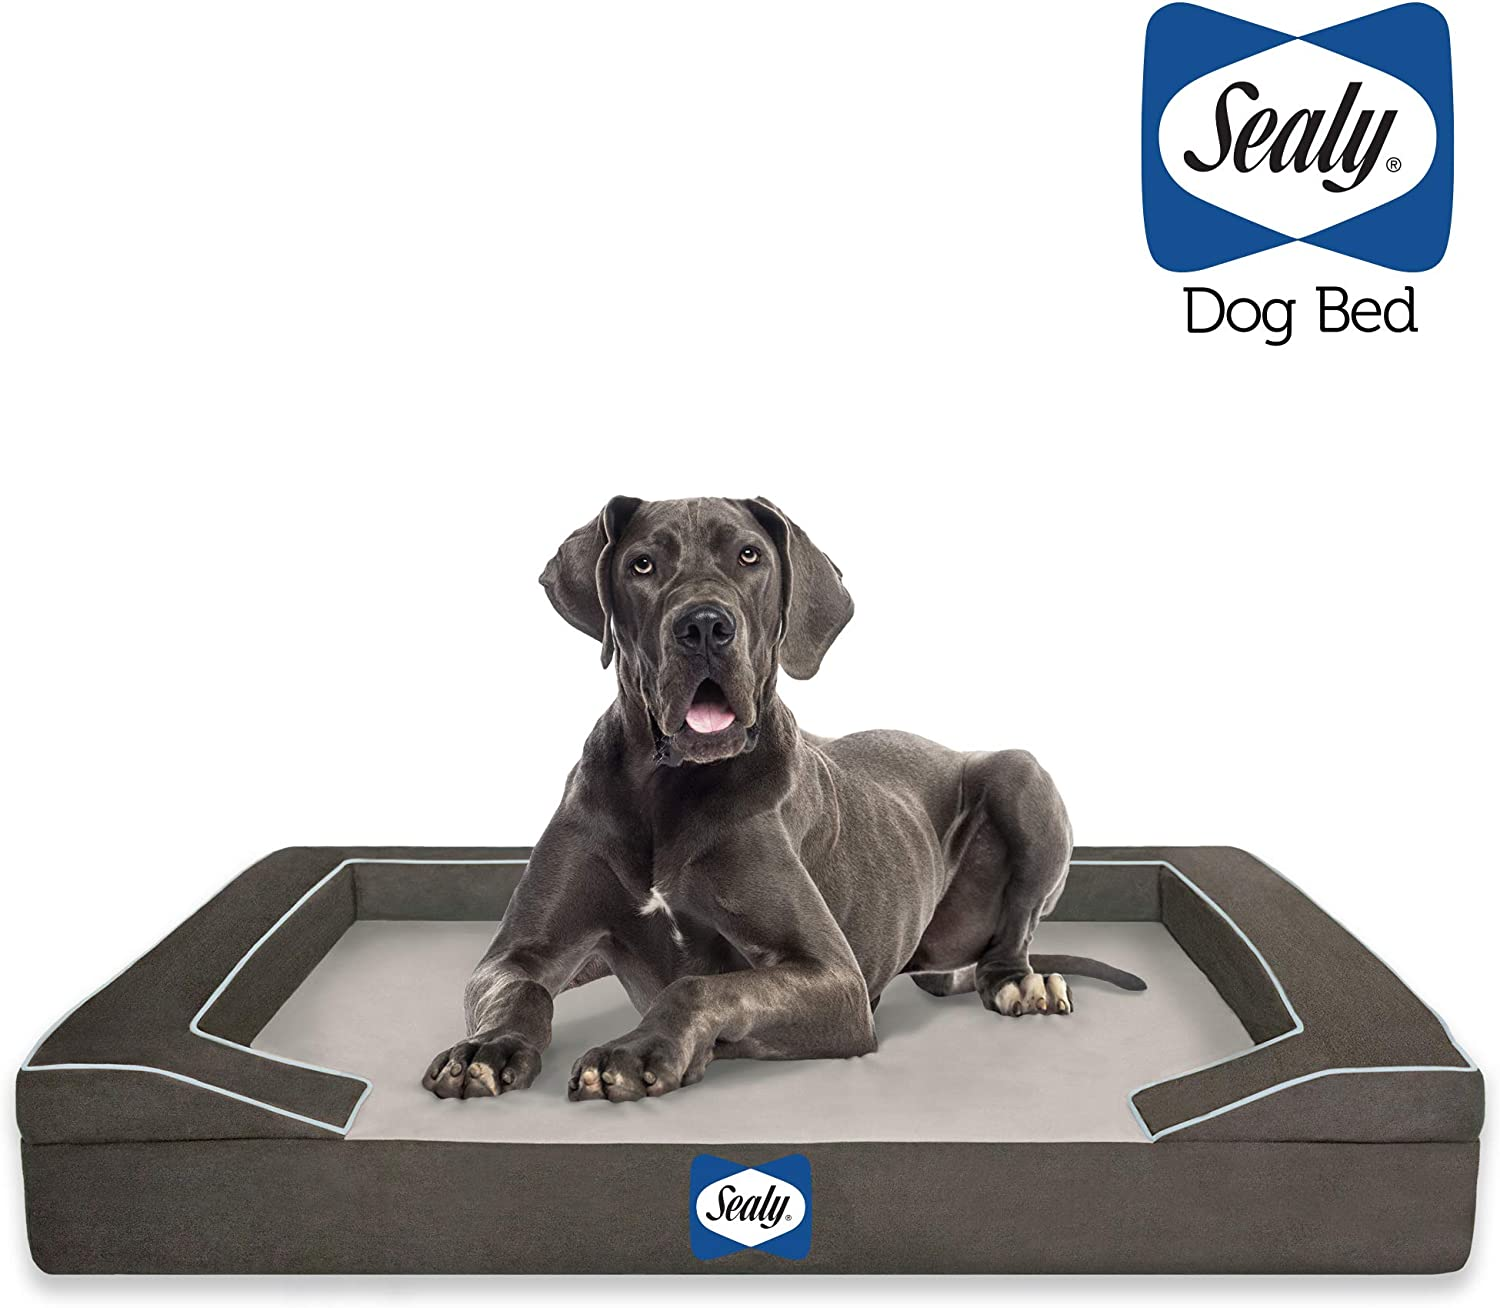 Autumn Brown Machine Washable Cover Orthopedic Foam Small Sealy Lux Pet Dog Bed Quad Layer Technology with Memory Foam and Cooling Energy Gel